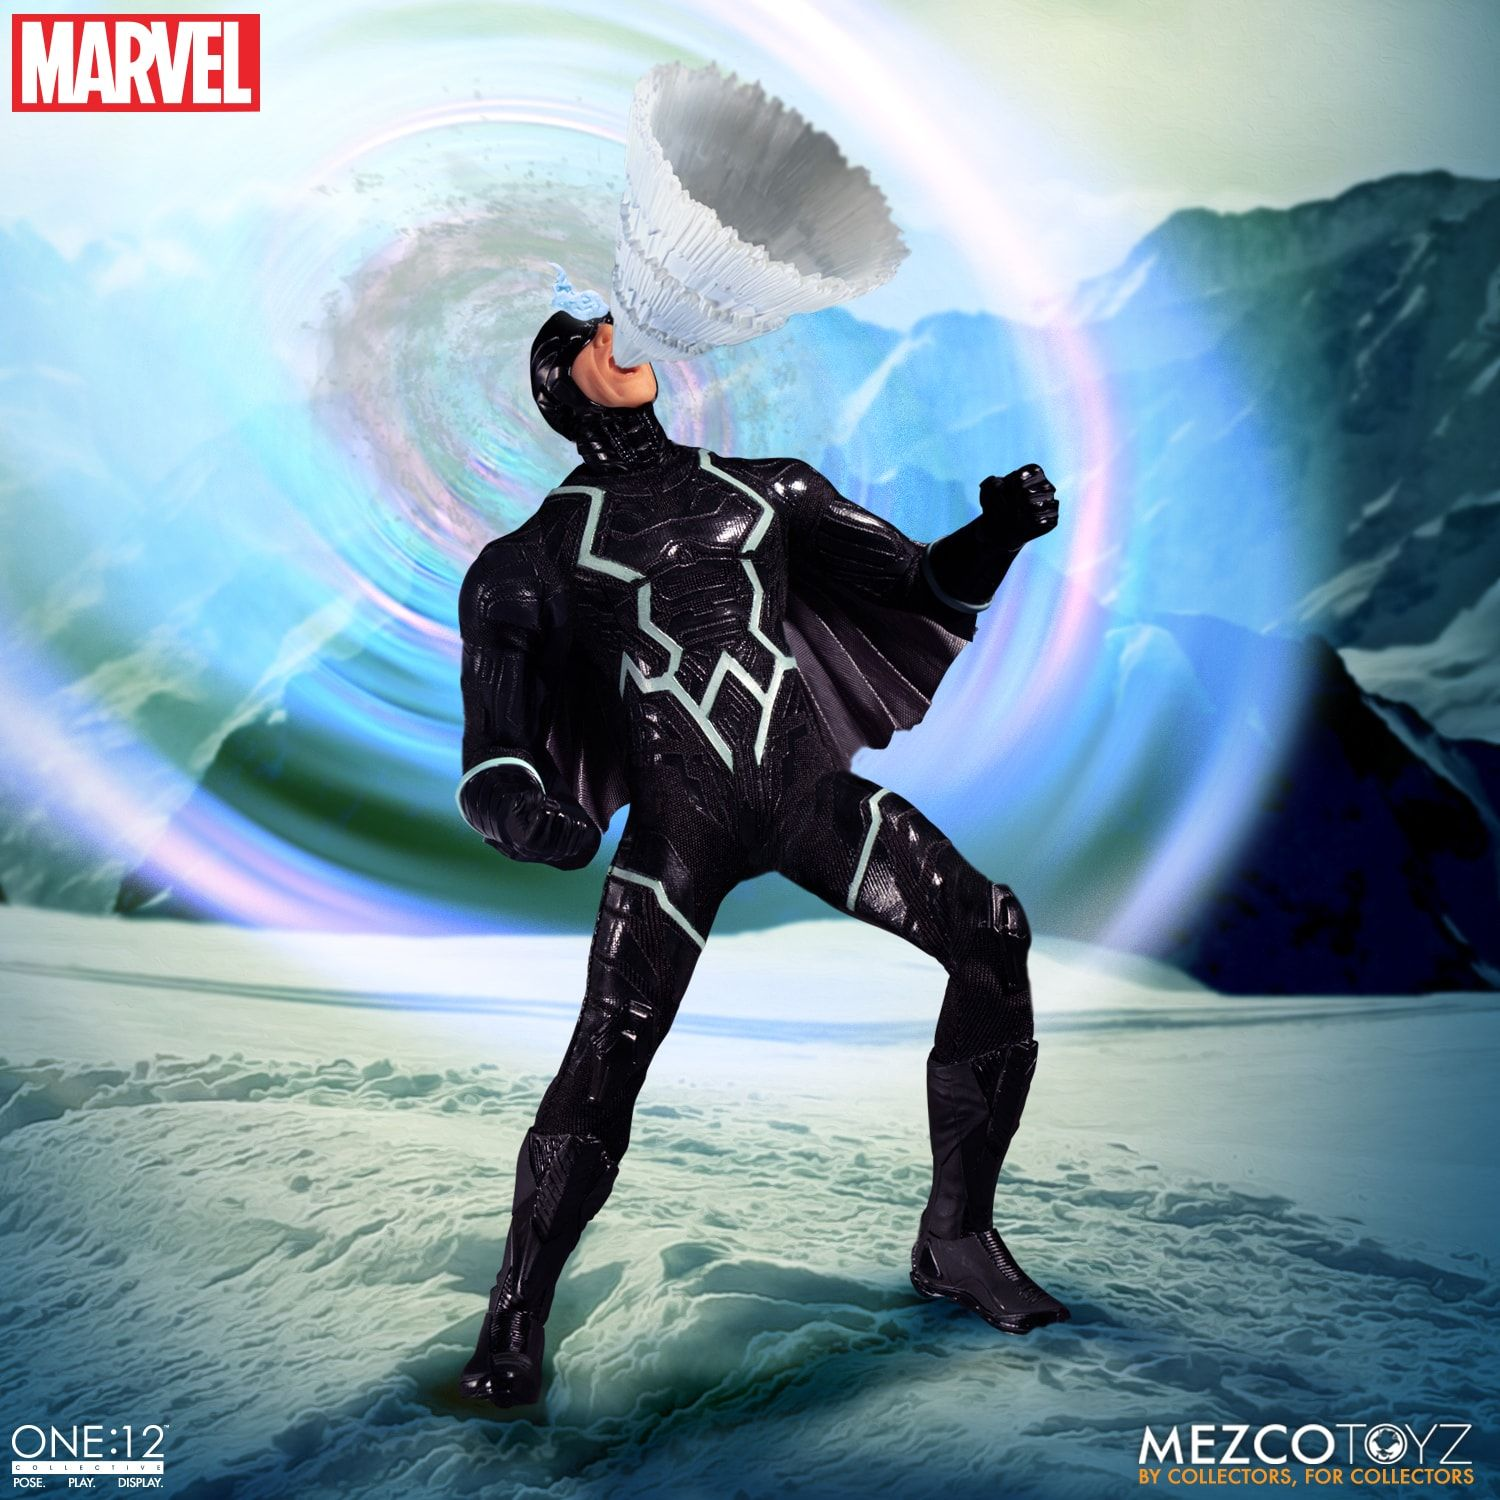 Mezco - One:12 Collective - Marvel - Black Bolt & Lockjaw